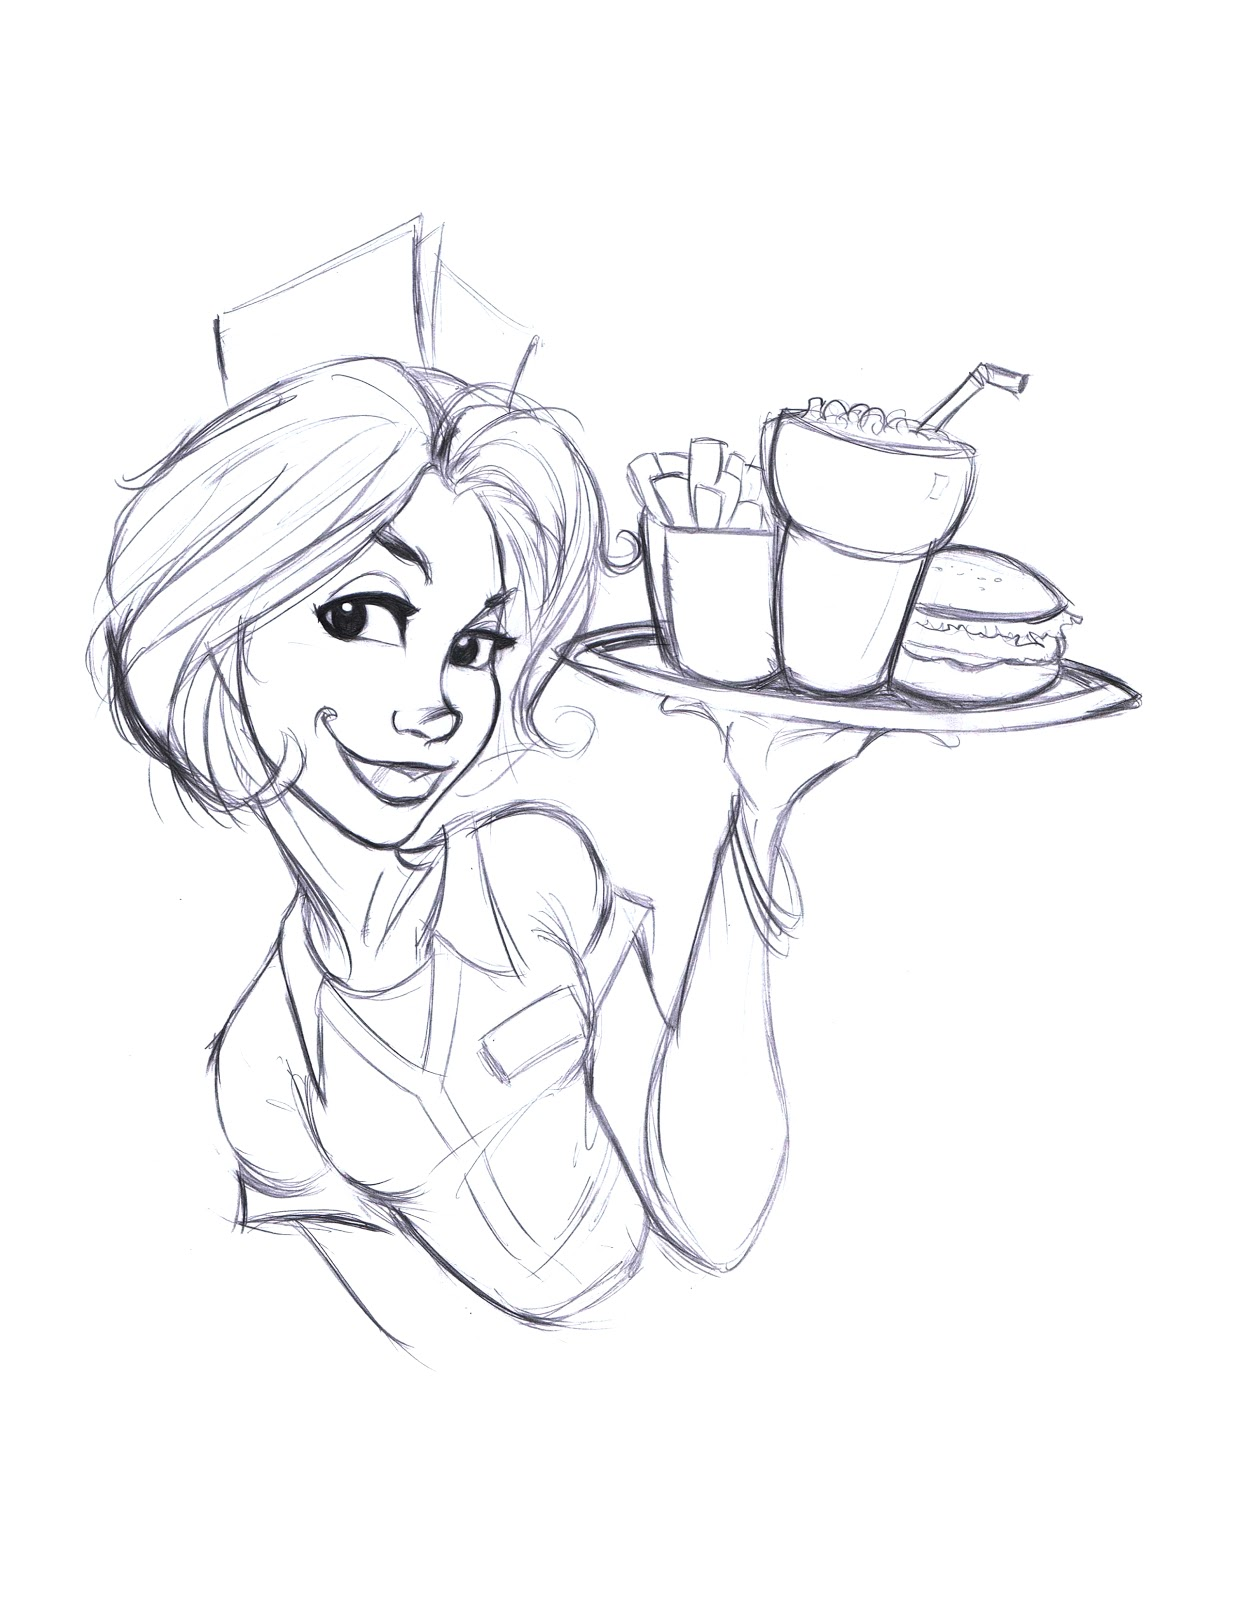 1236x1600 Tali's Diner Waitress Sketch And Colors